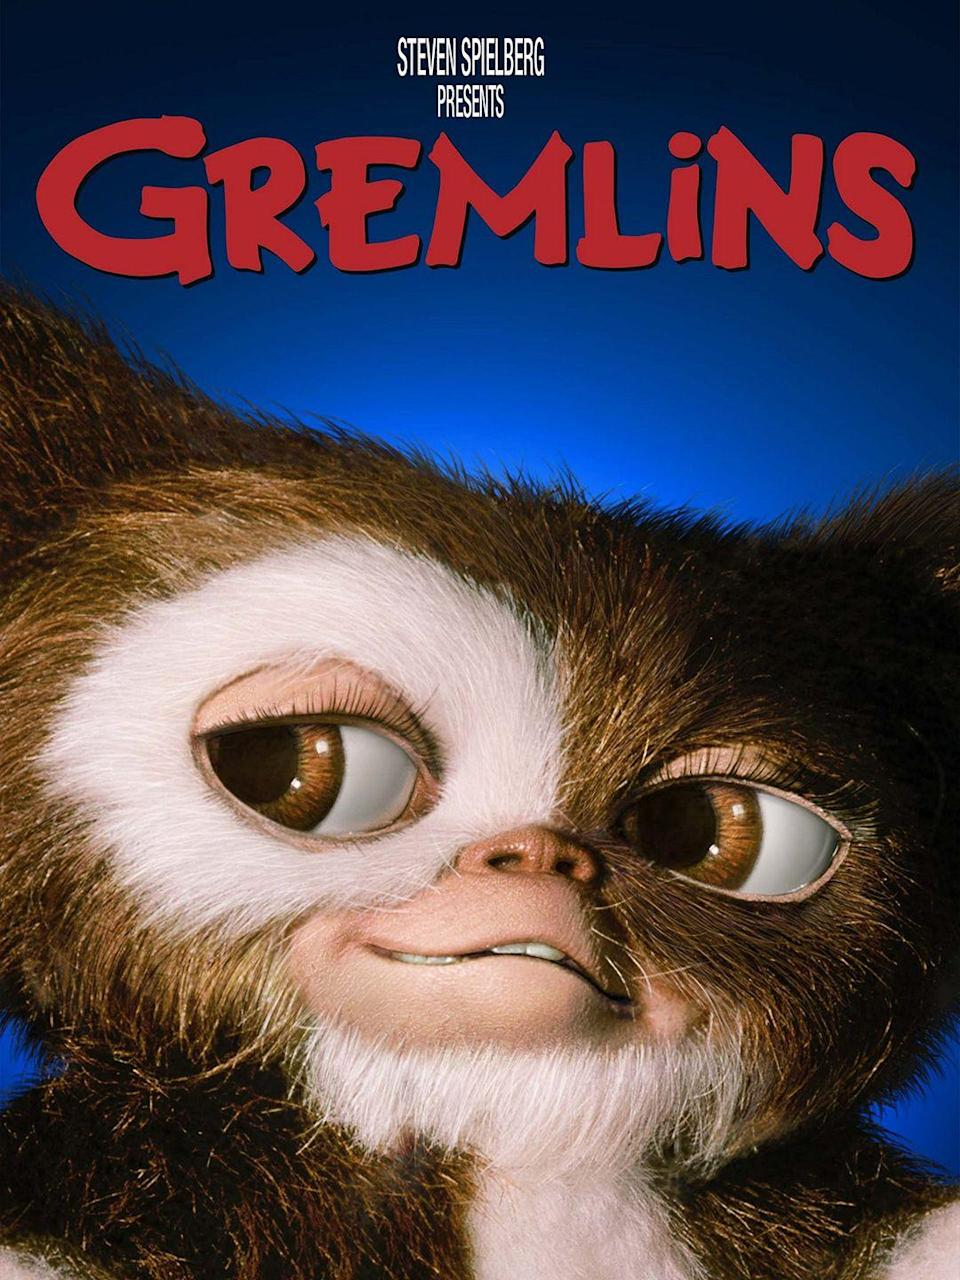 """<p>In this holiday(ish) horror movie, a cute and fuzzy present spawns evil offspring that ruin Christmas Eve after a boy breaks three important rules.</p><p><a class=""""link rapid-noclick-resp"""" href=""""https://www.amazon.com/Gremlins-Zach-Galligan/dp/B00KQ9ZW4O/?tag=syn-yahoo-20&ascsubtag=%5Bartid%7C10055.g.1315%5Bsrc%7Cyahoo-us"""" rel=""""nofollow noopener"""" target=""""_blank"""" data-ylk=""""slk:WATCH NOW"""">WATCH NOW</a></p><p><strong>RELATED: </strong><a href=""""https://www.goodhousekeeping.com/holidays/christmas-ideas/g29994860/best-christmas-horror-movies/"""" rel=""""nofollow noopener"""" target=""""_blank"""" data-ylk=""""slk:The 12 Best Christmas Horror Movies to Watch and Stream This Year"""" class=""""link rapid-noclick-resp"""">The 12 Best Christmas Horror Movies to Watch and Stream This Year</a></p>"""